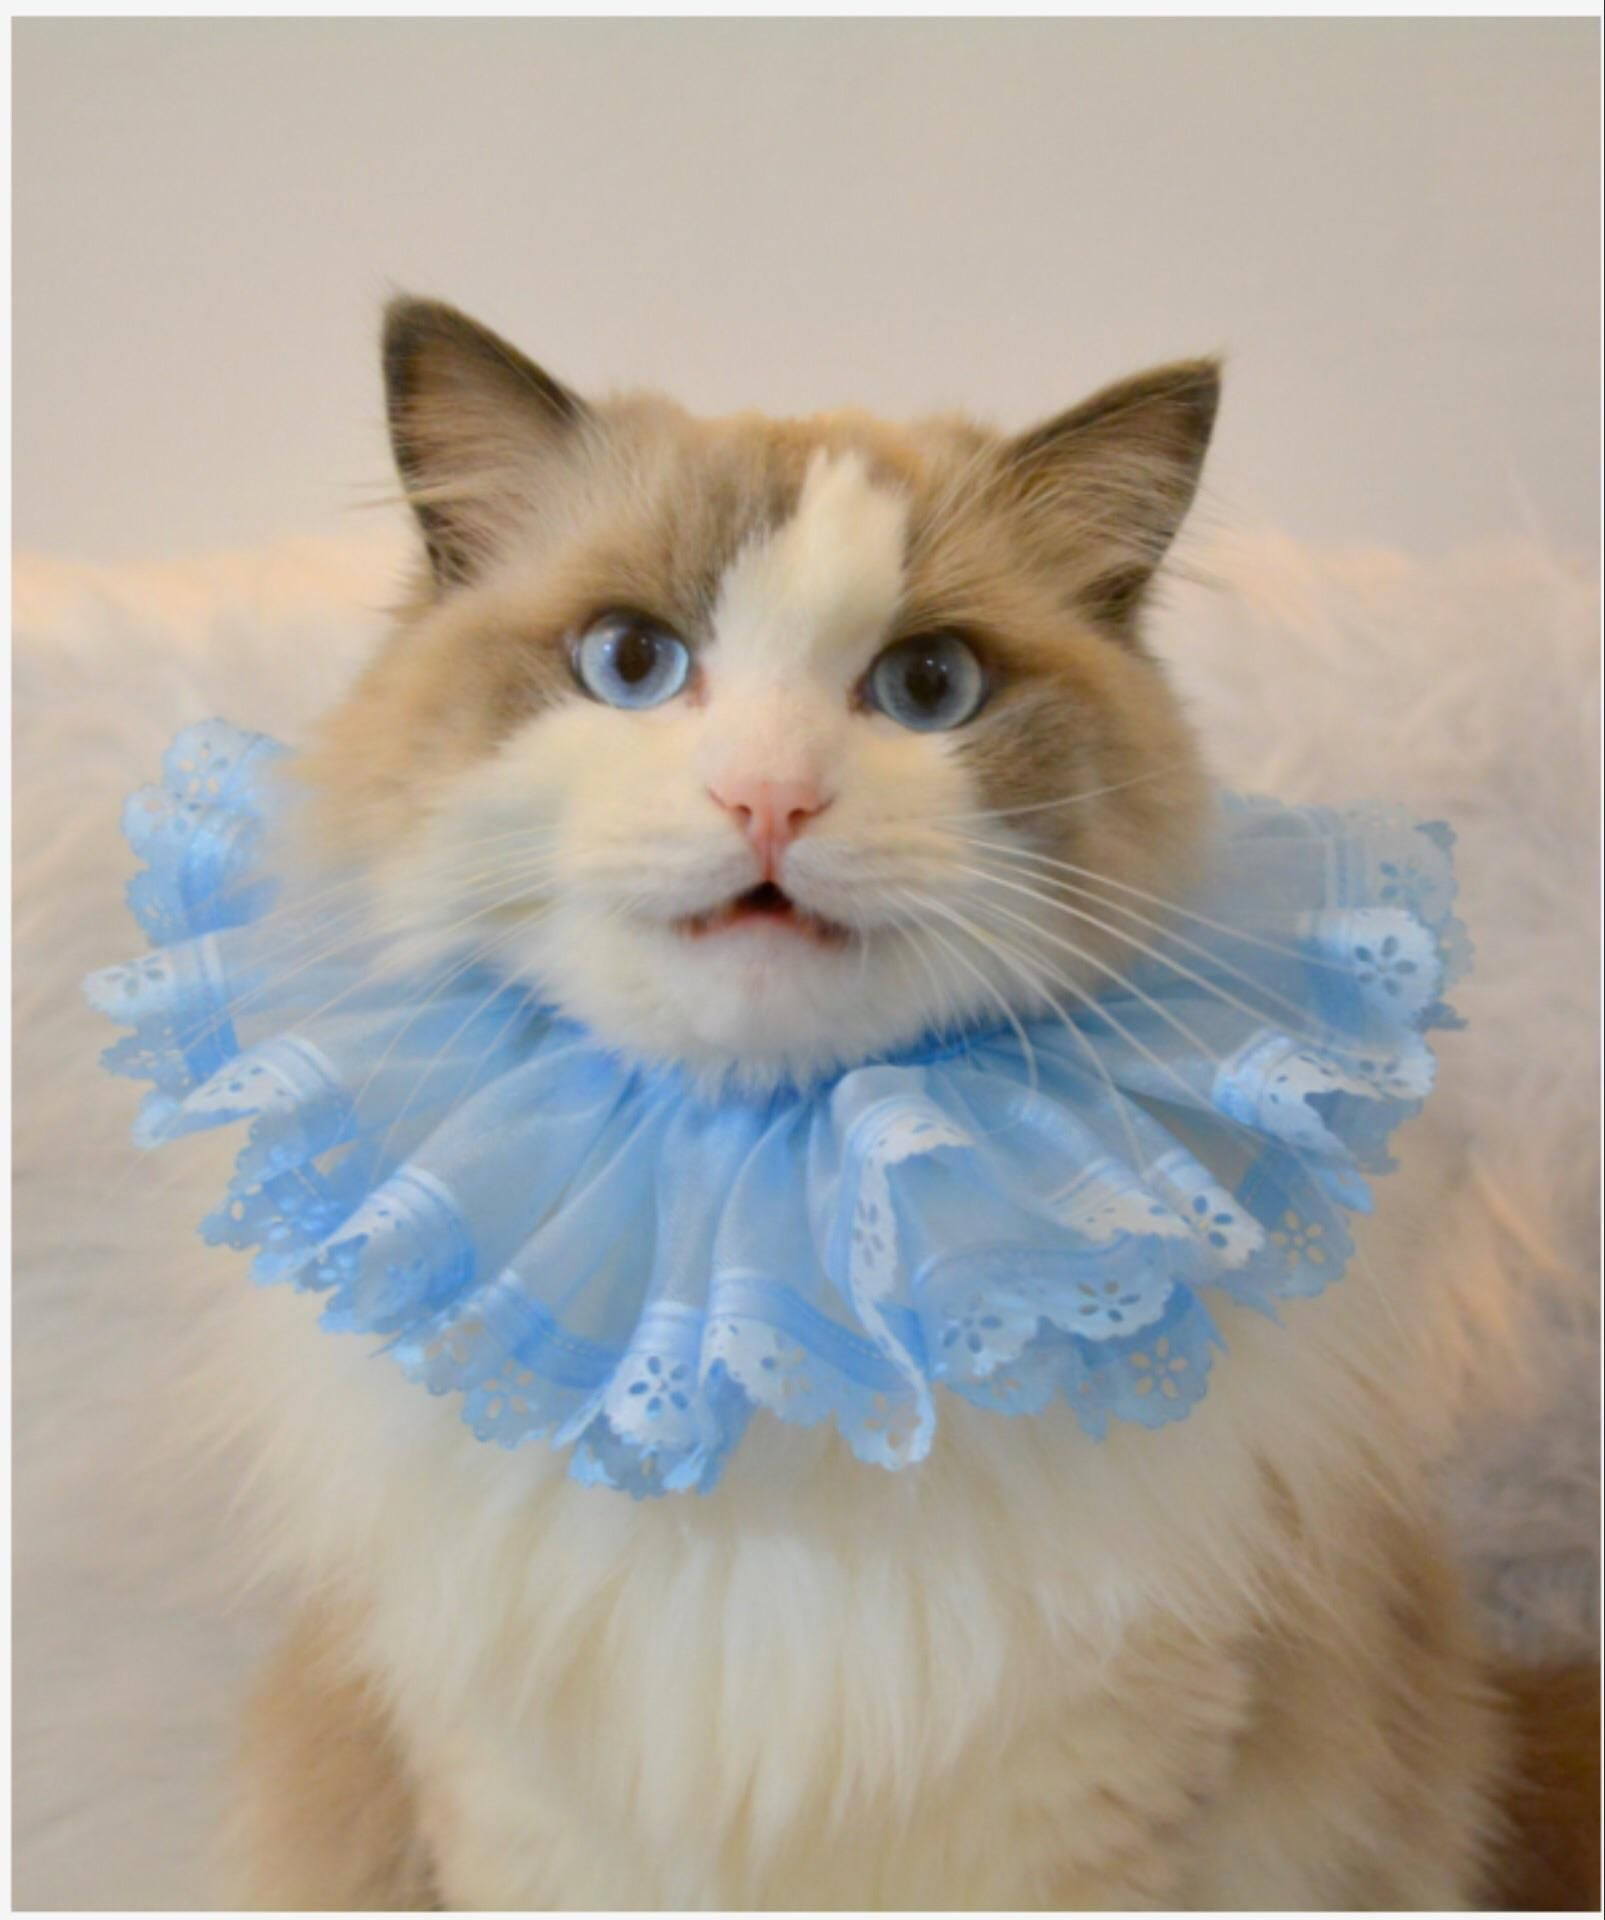 This Is A Neck Tutu For Small Pets 3 Http Ift Tt 2rsrarz Pet Photography Props Pet Photo Prop Cat Costumes